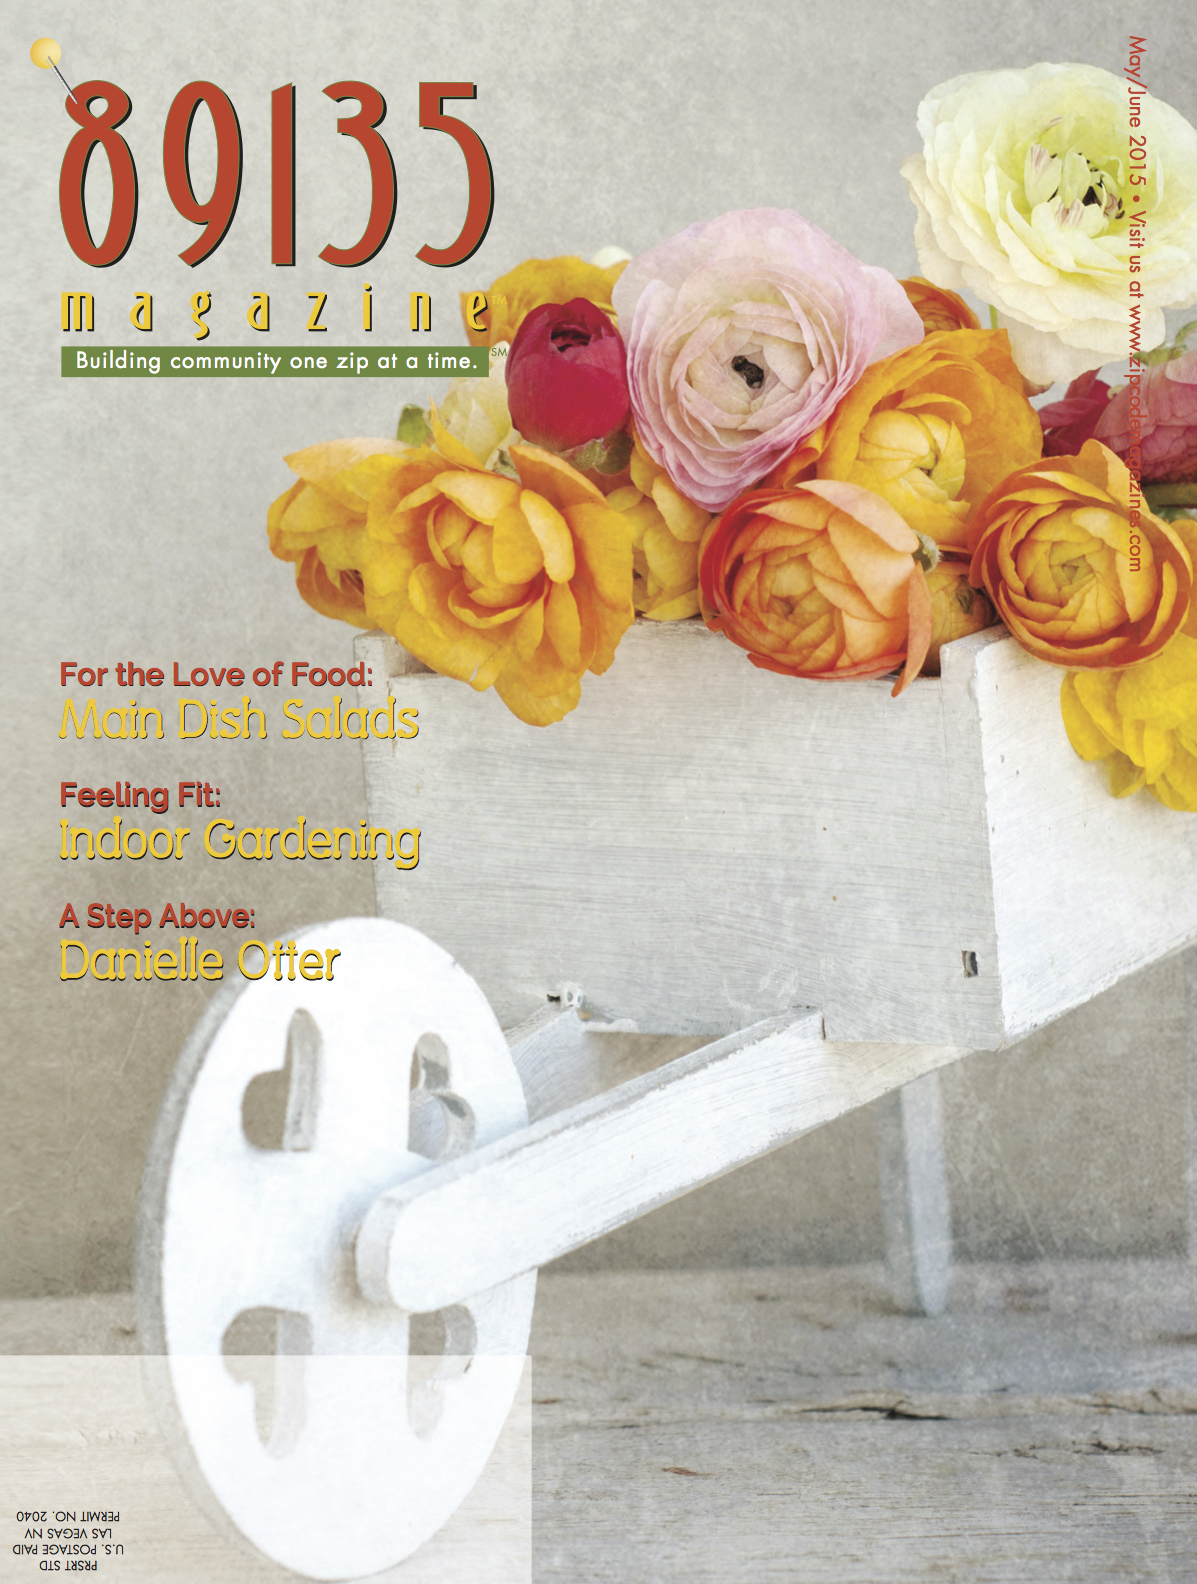 89135 Cover